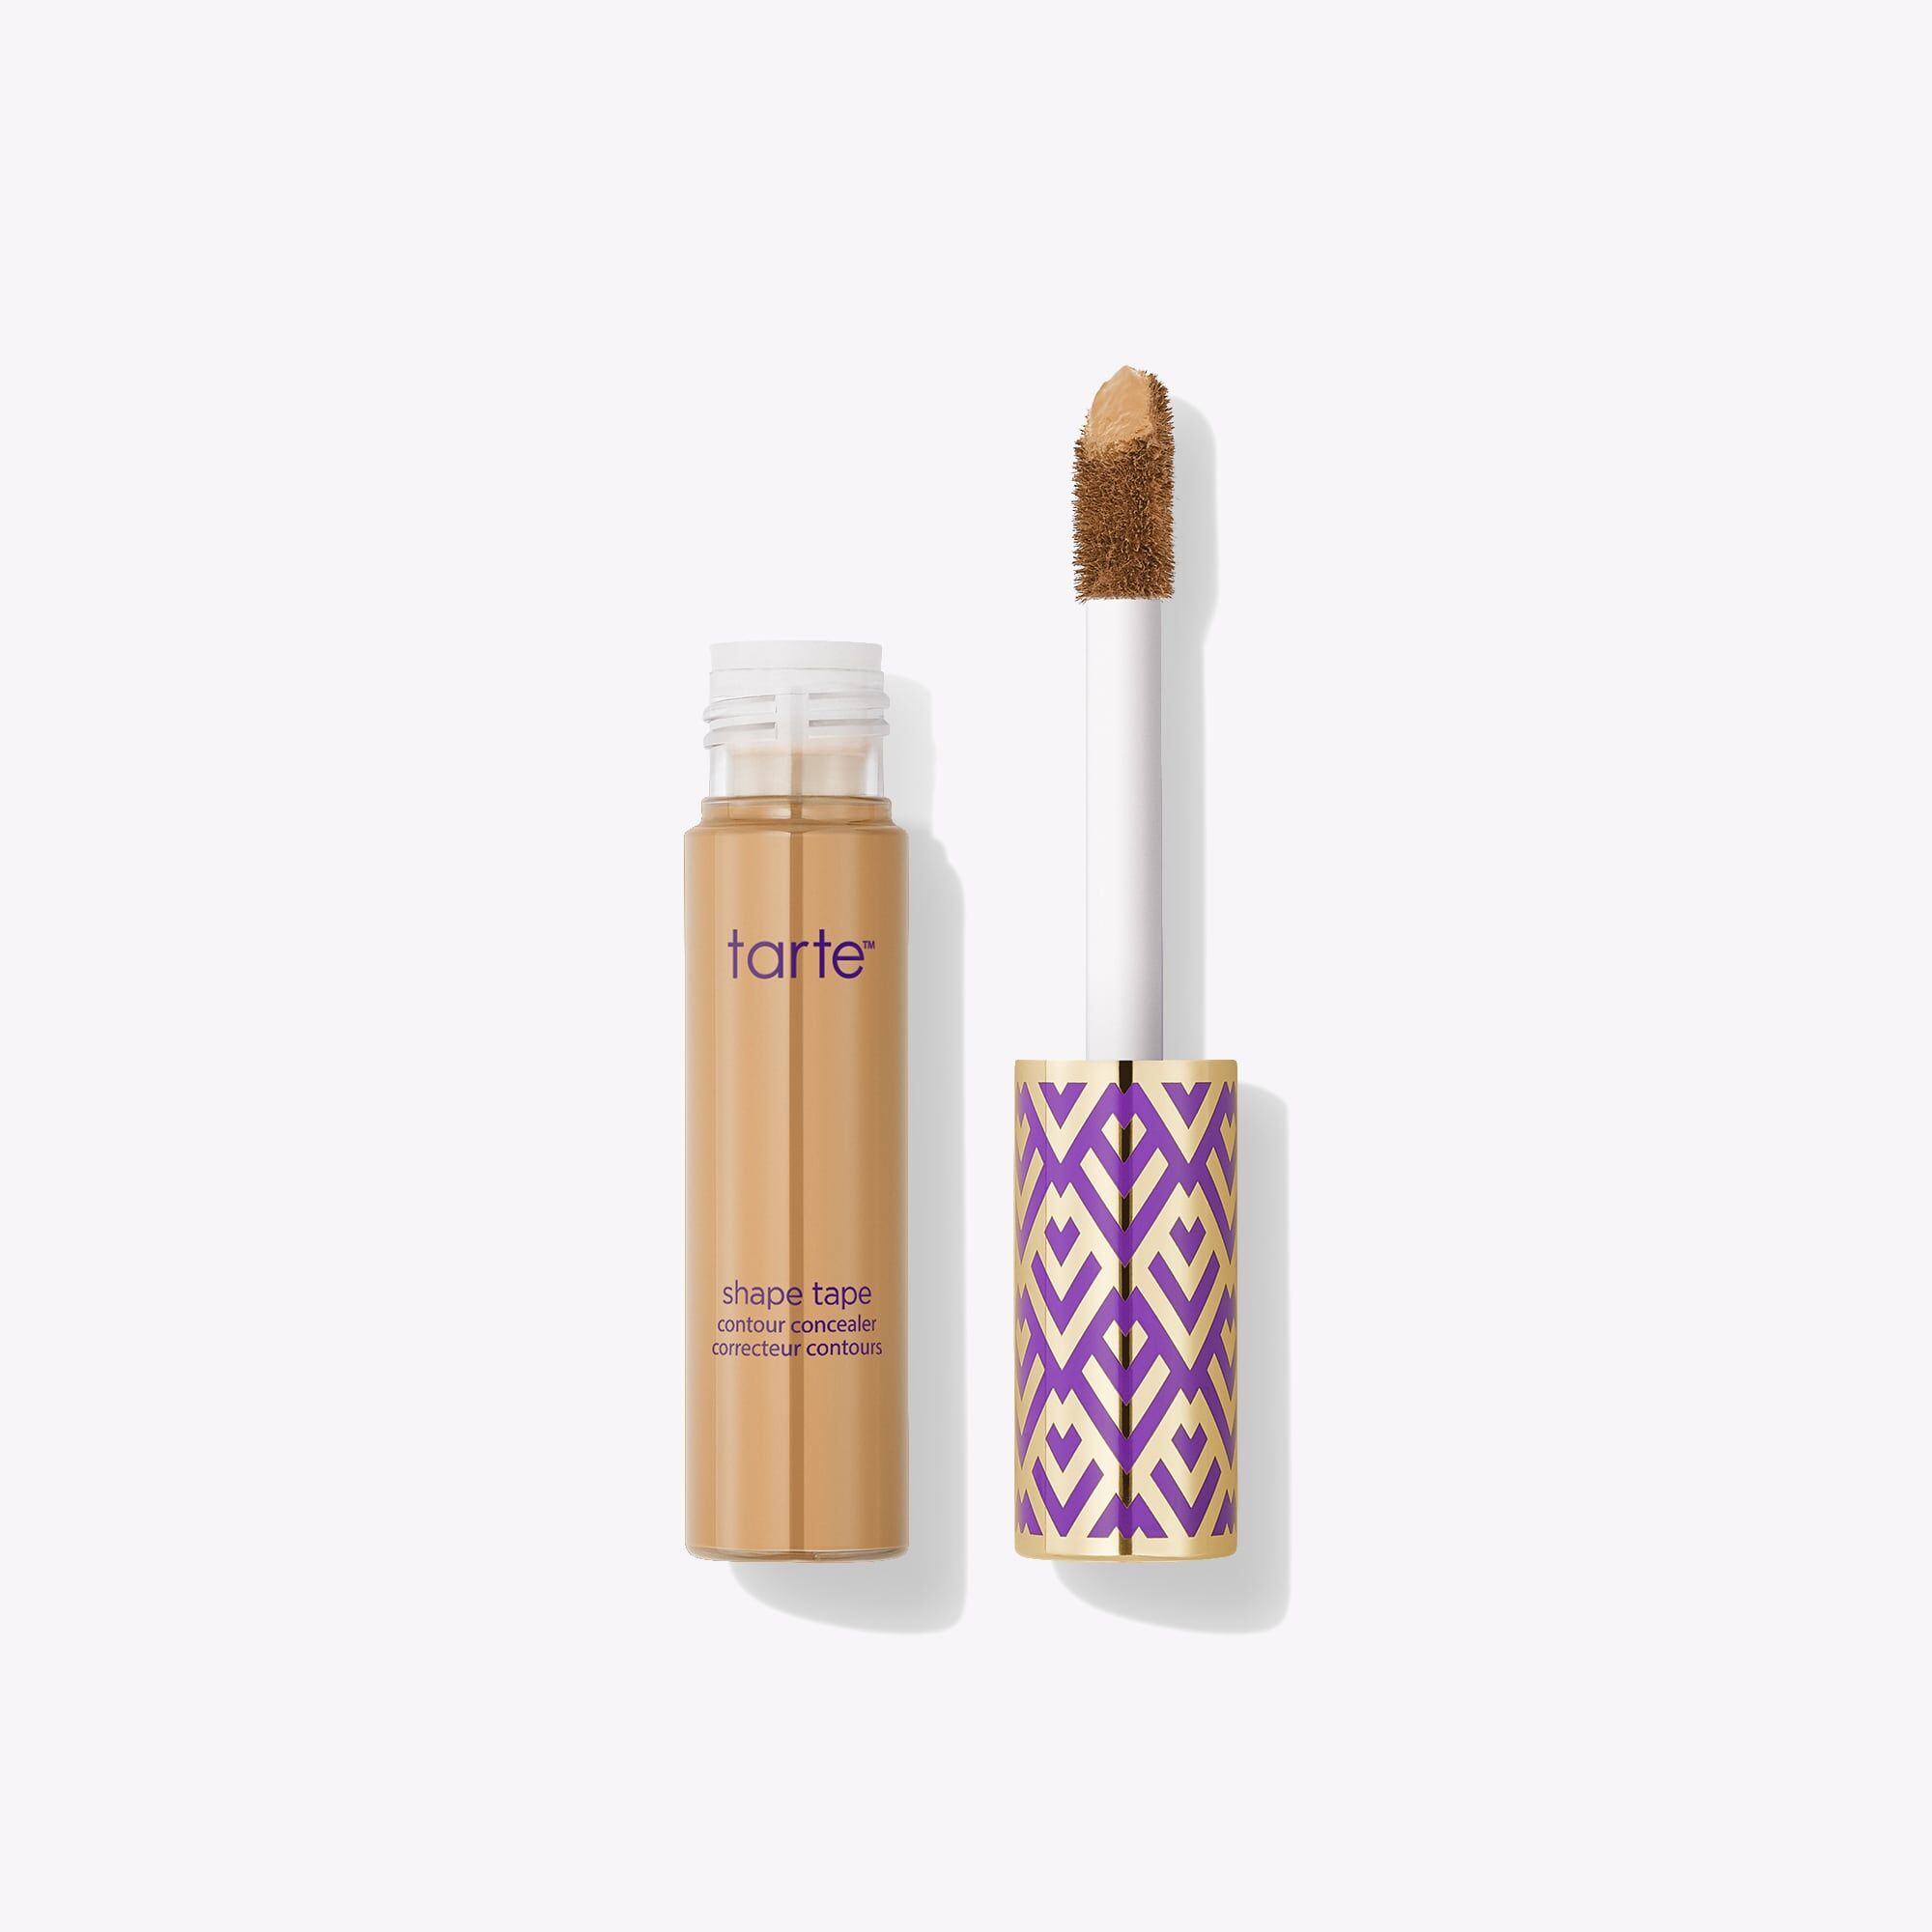 Tarte Cosmetics: Makeup, Skincare & Beauty Products